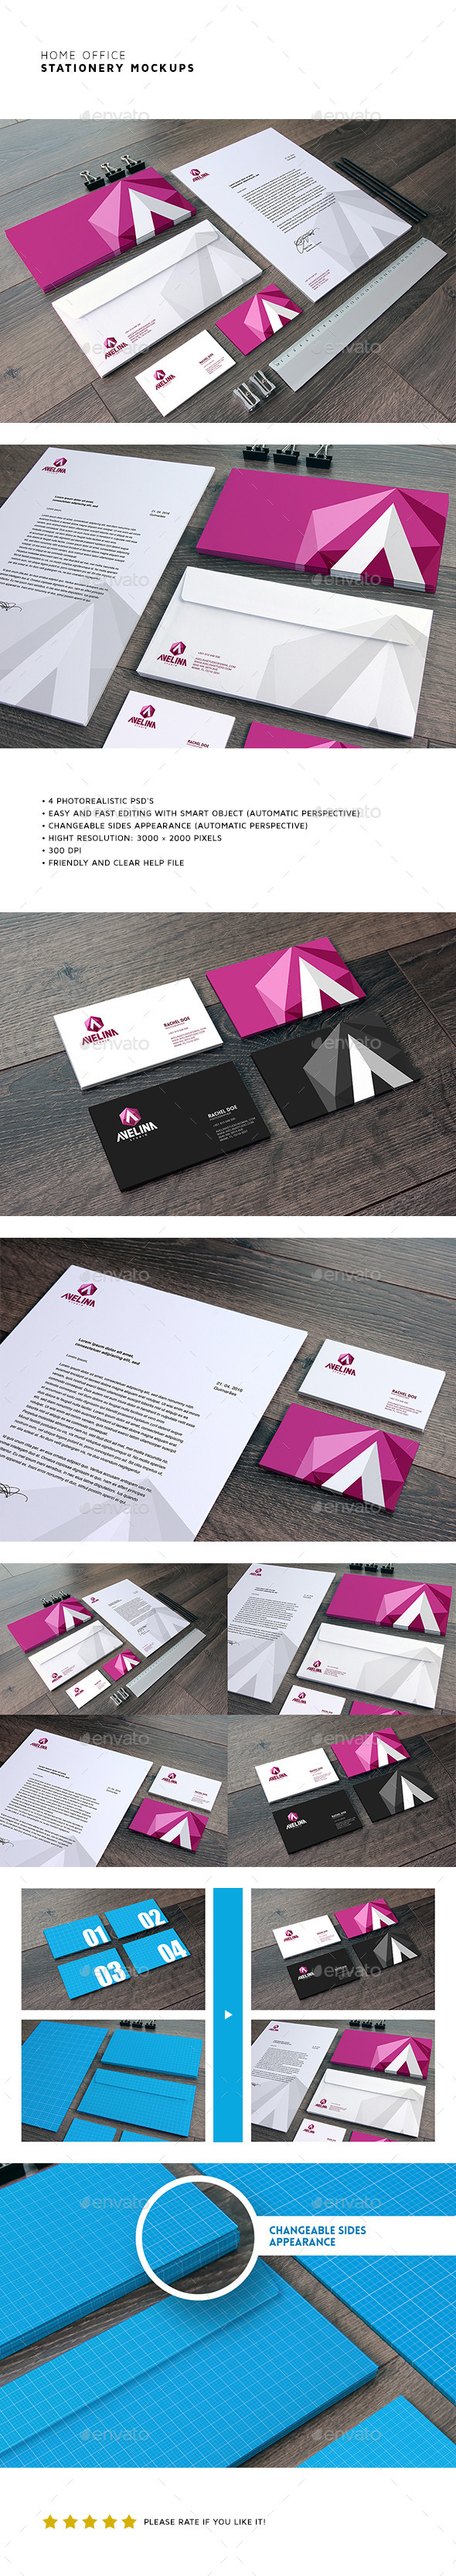 Stationary / Branding Mock-up Vol. 1 (Stationery)